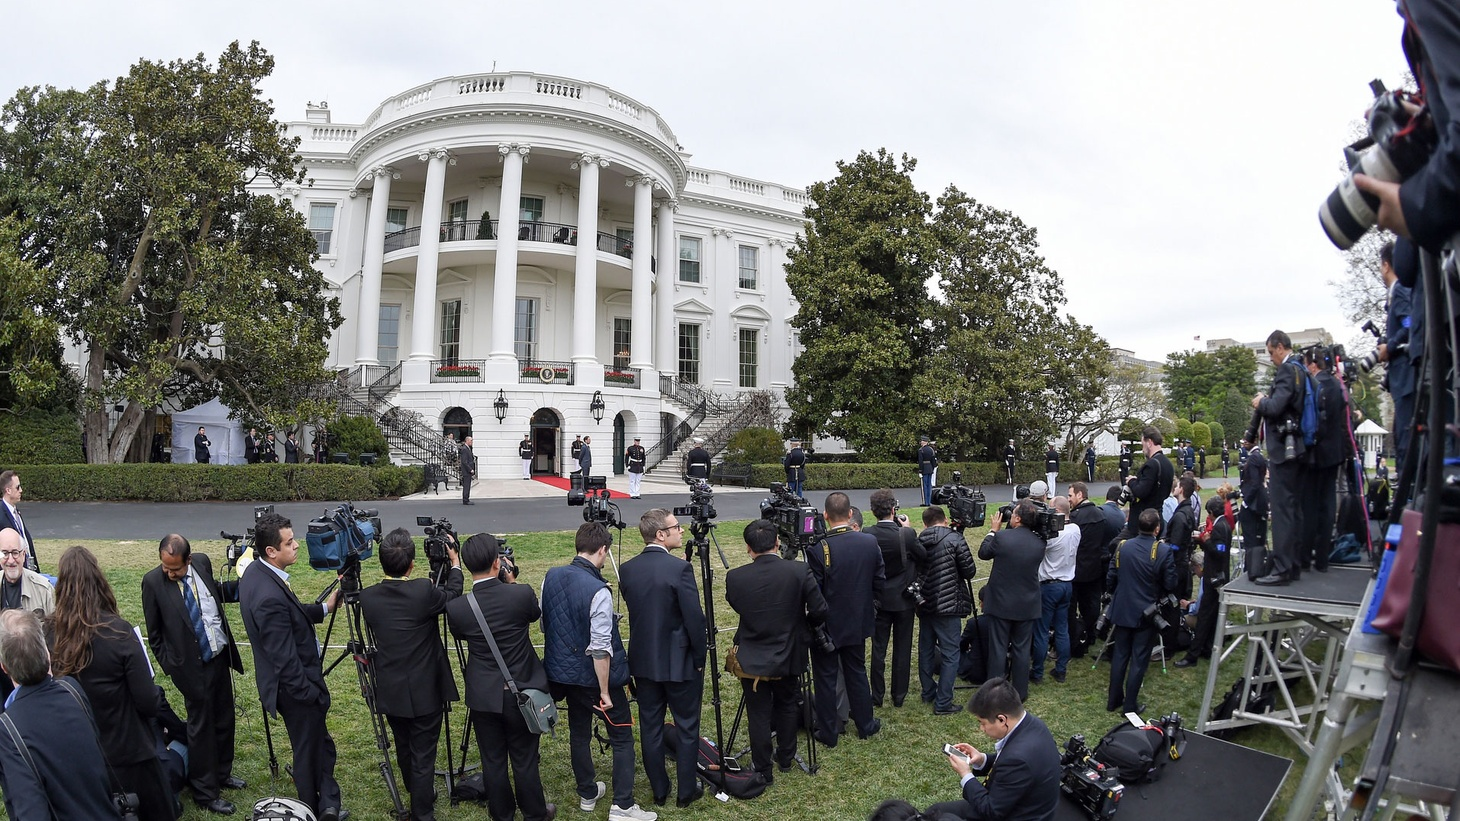 America's White House has never been completely transparent, but the Bill of Rights protects reporters when they try to discover as much as they can. As President, Donald Trump may create new challenges…for journalists and for every American who wants to know.